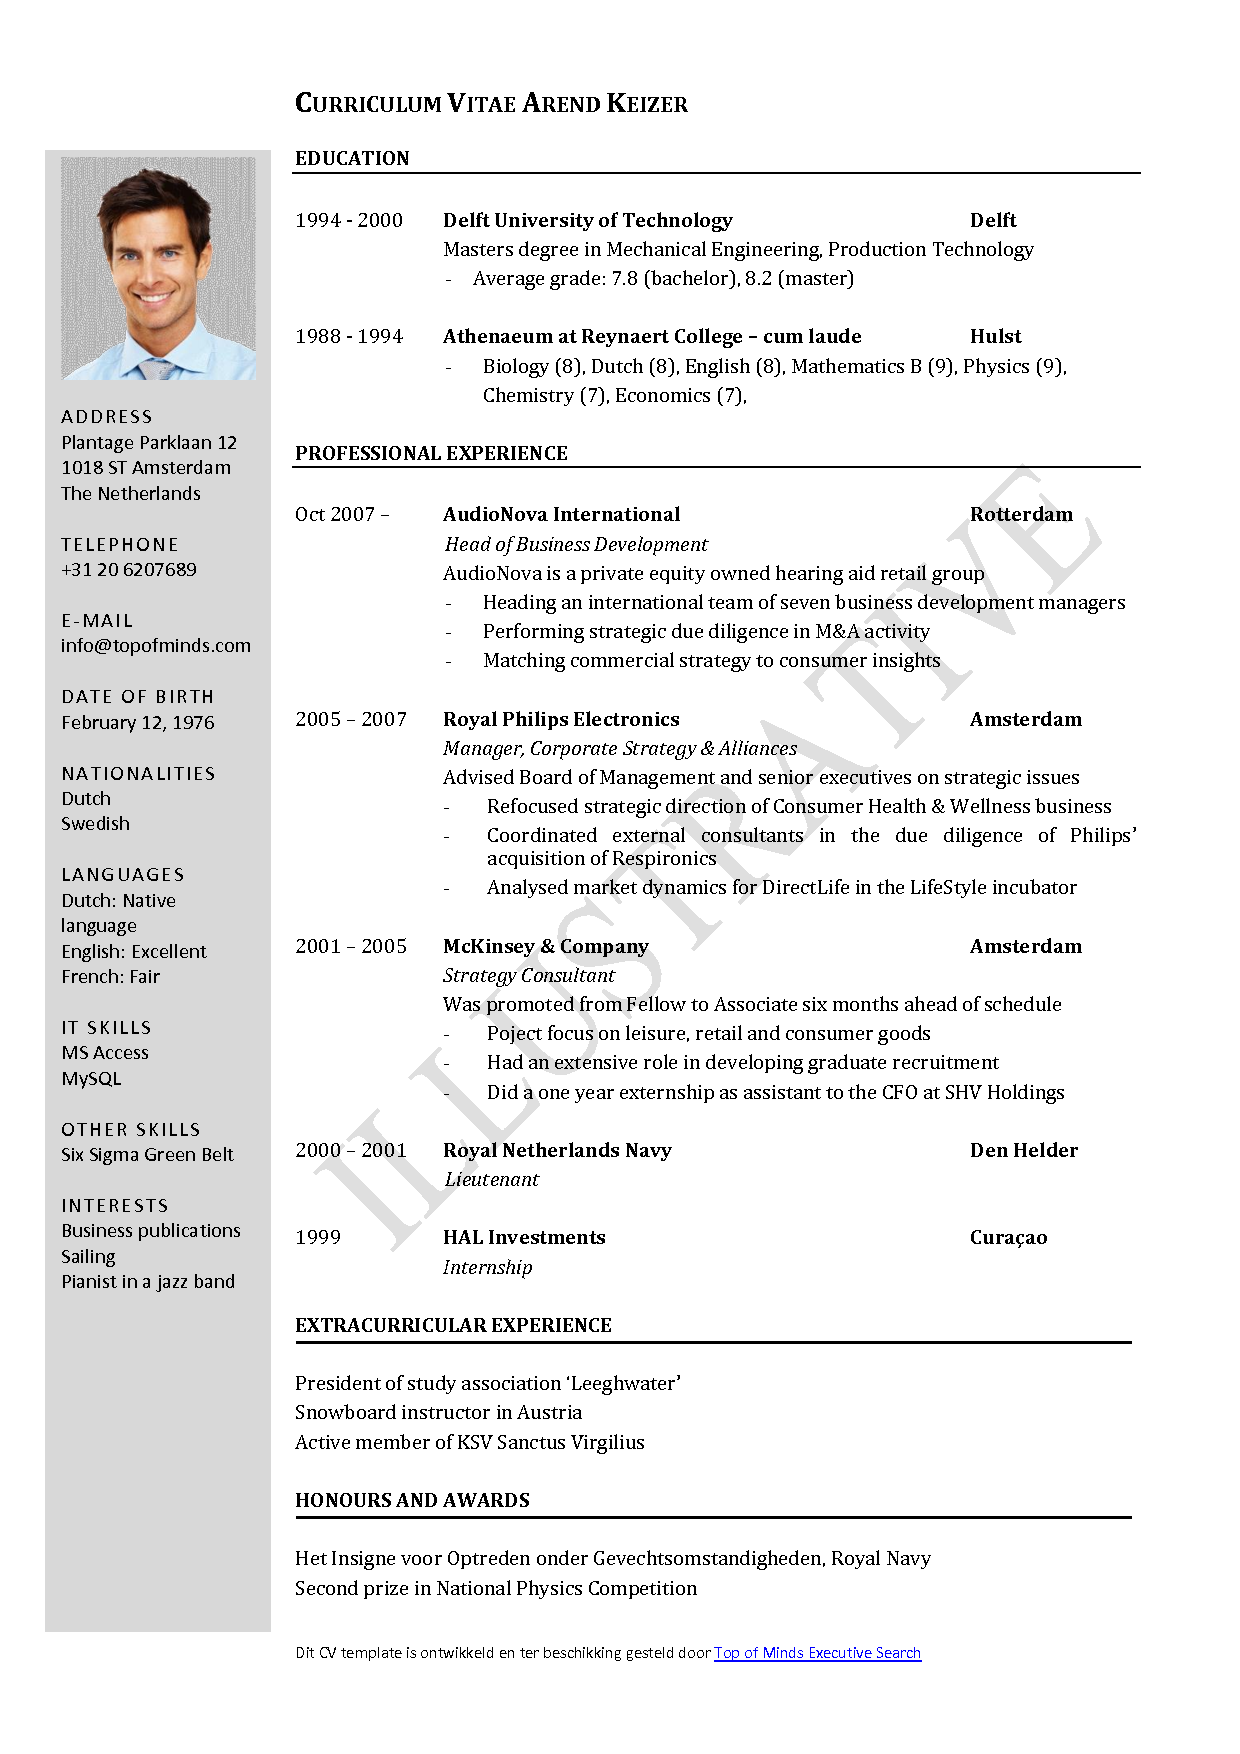 free curriculum vitae template word download cv template - Word Templates For Resumes